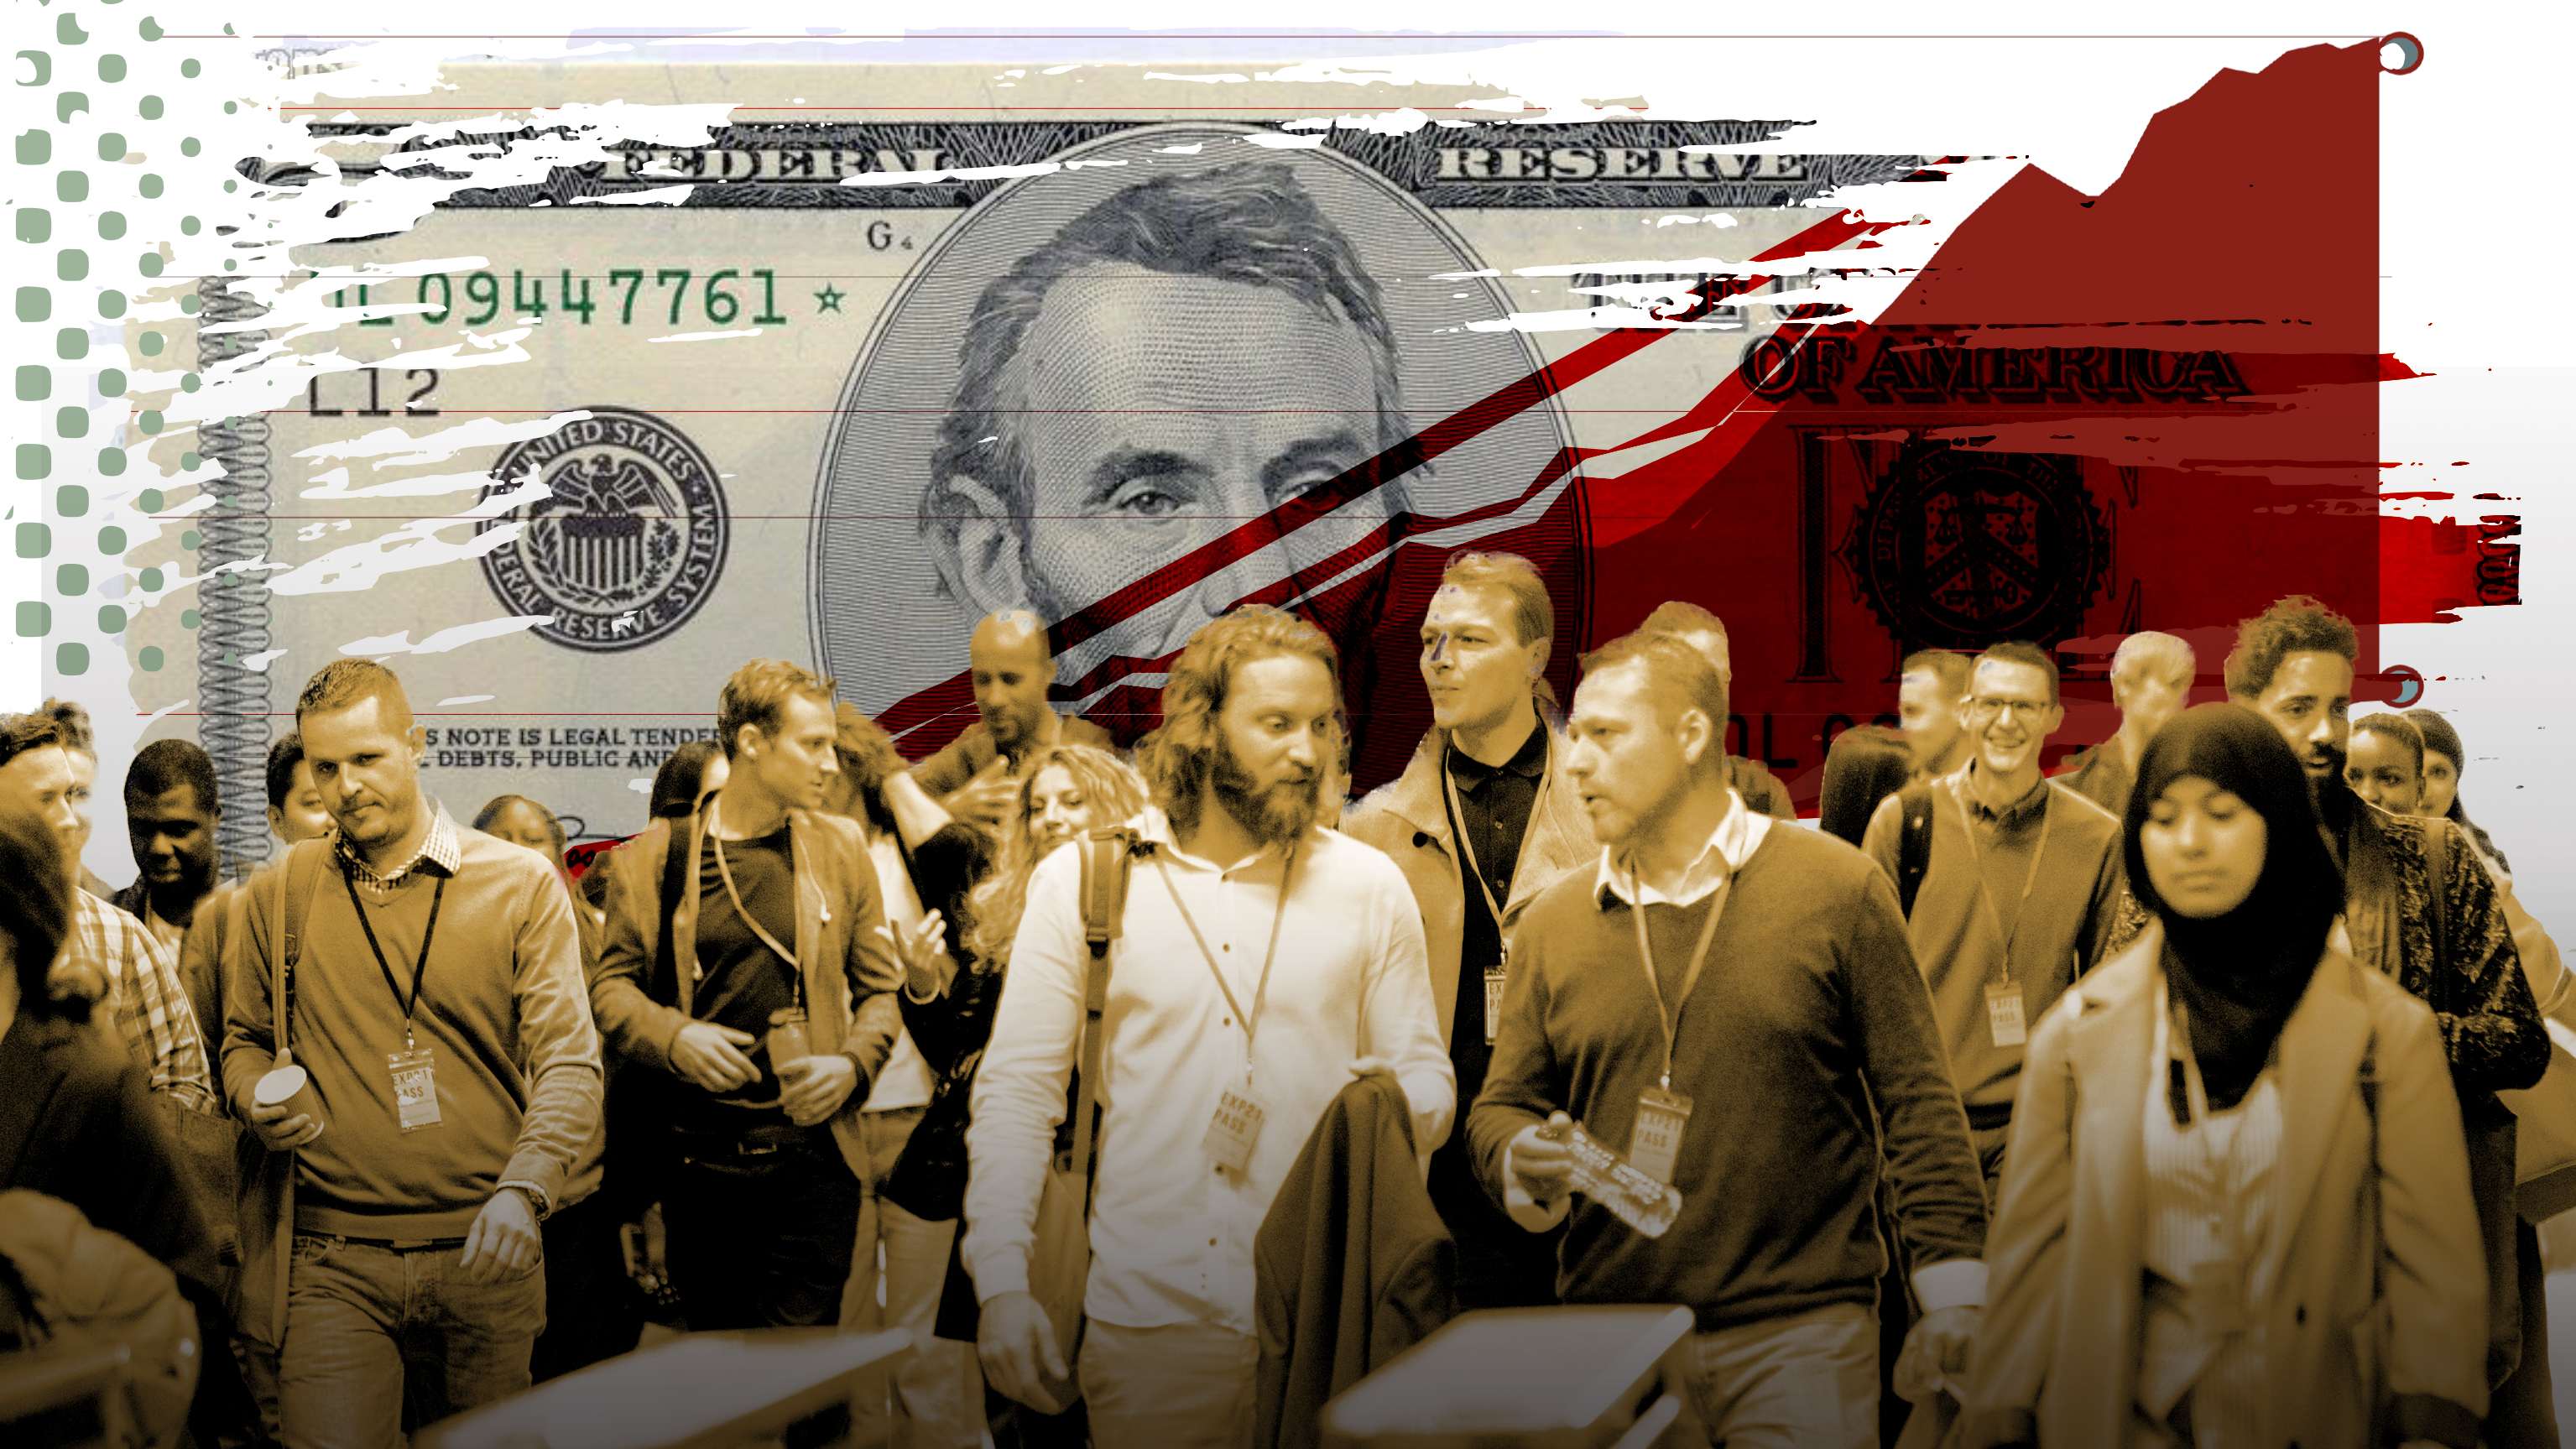 A photo illustration of a $5 bill and a crowd of people.